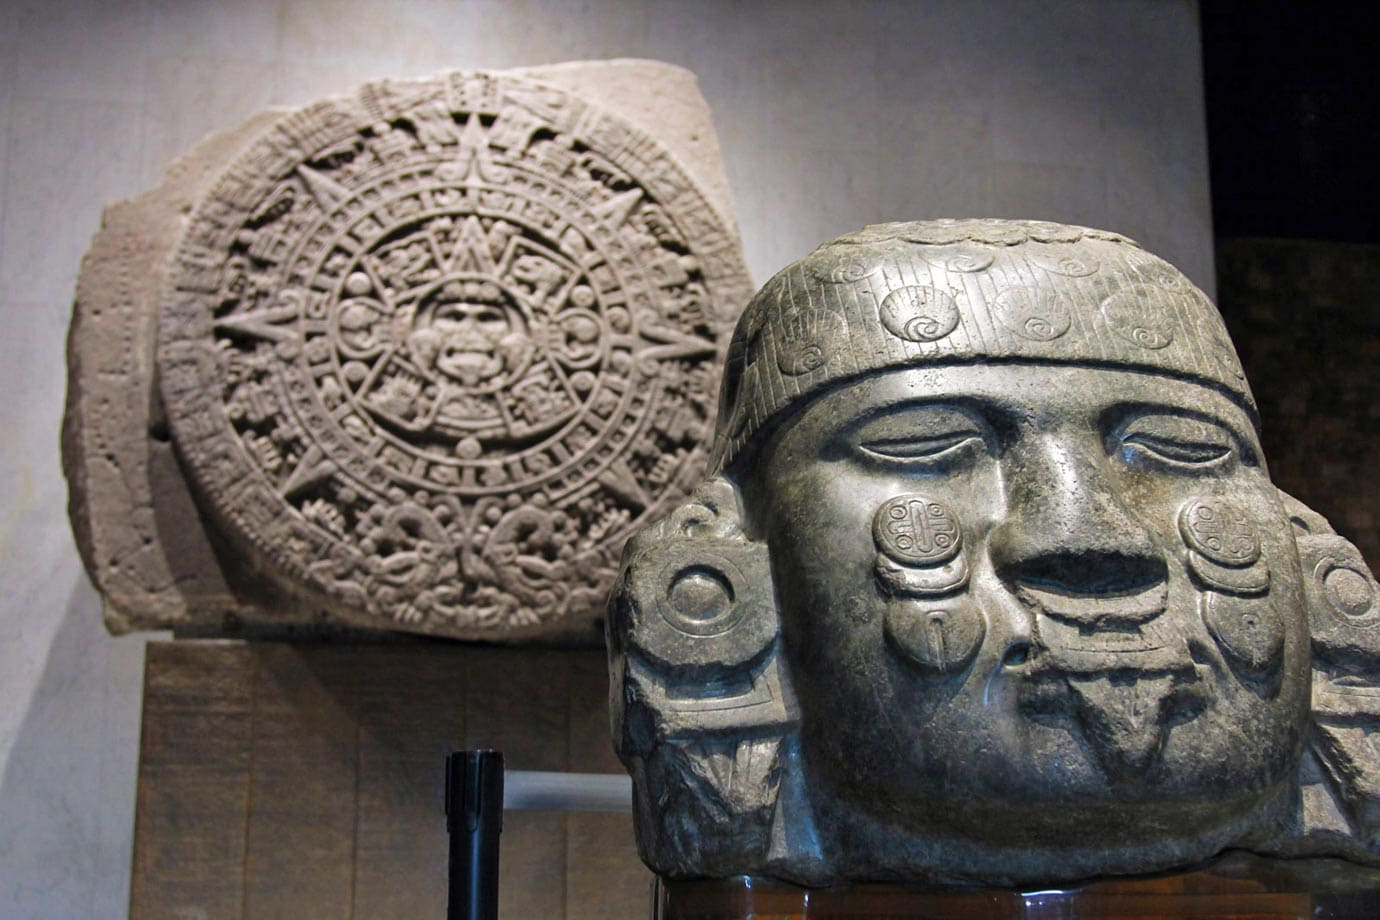 This is the Stone of the Sun, otherwise known as the Aztec Calendar Stone